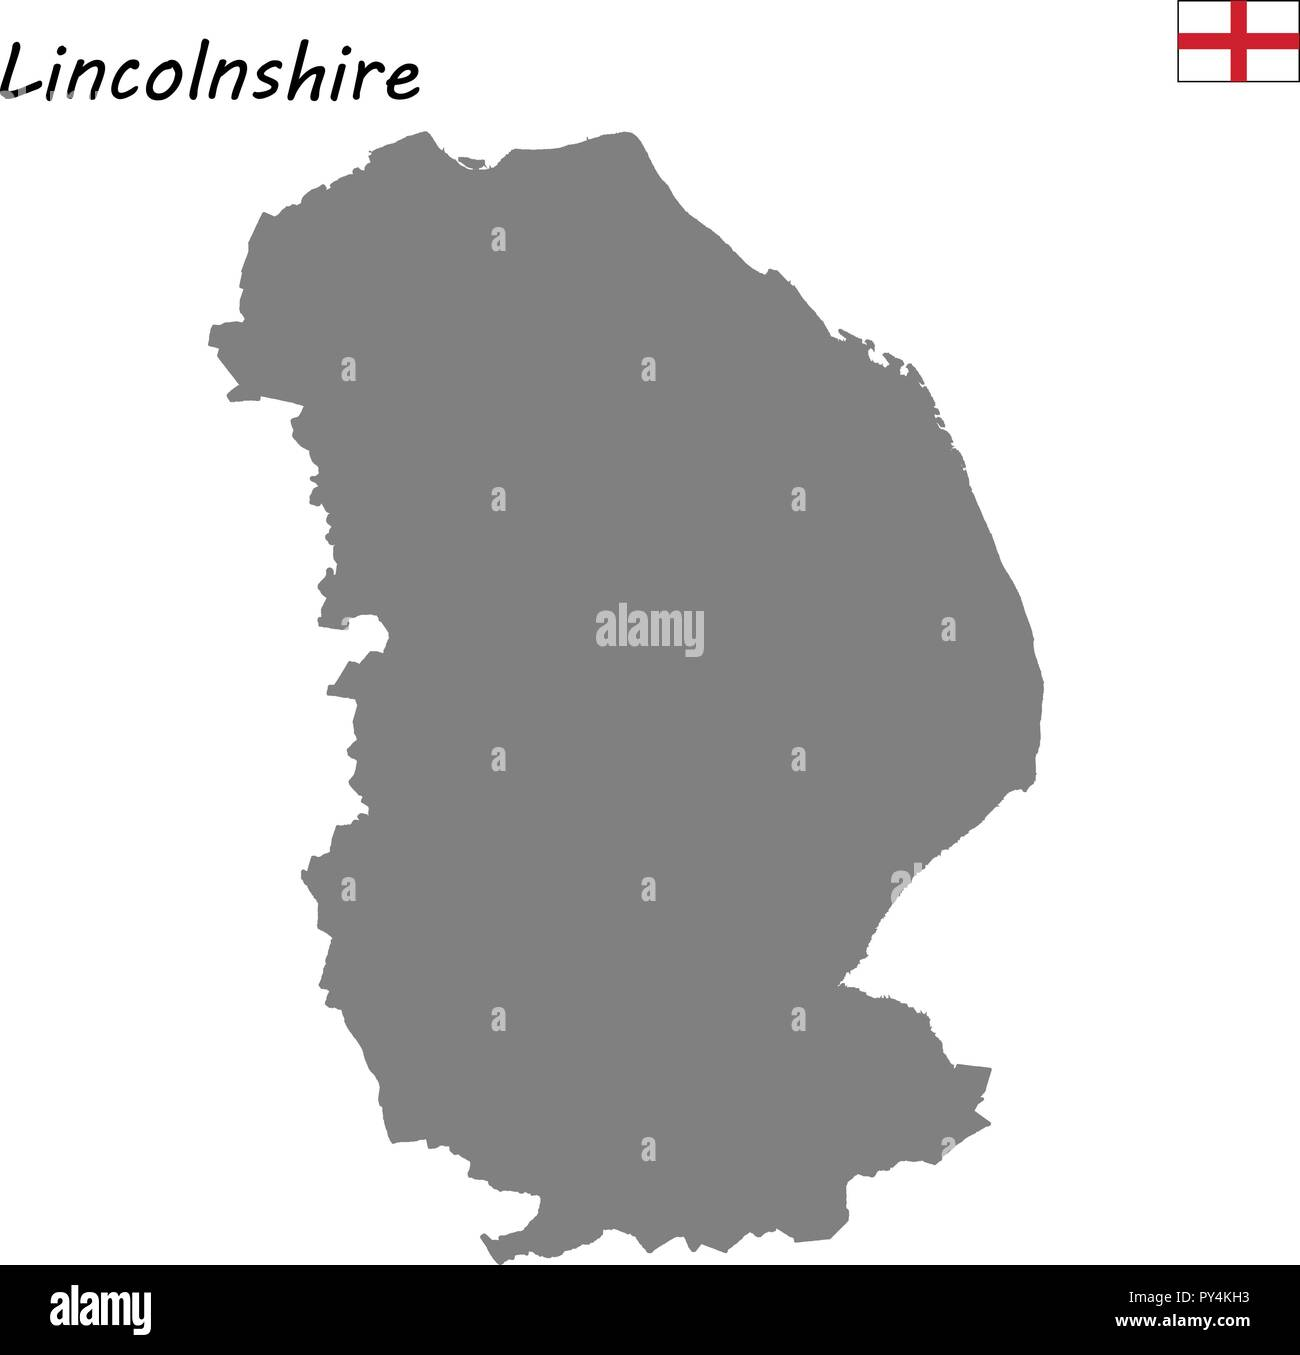 Map Of England Lincolnshire.High Quality Map Is A Ceremonial County Of England Lincolnshire